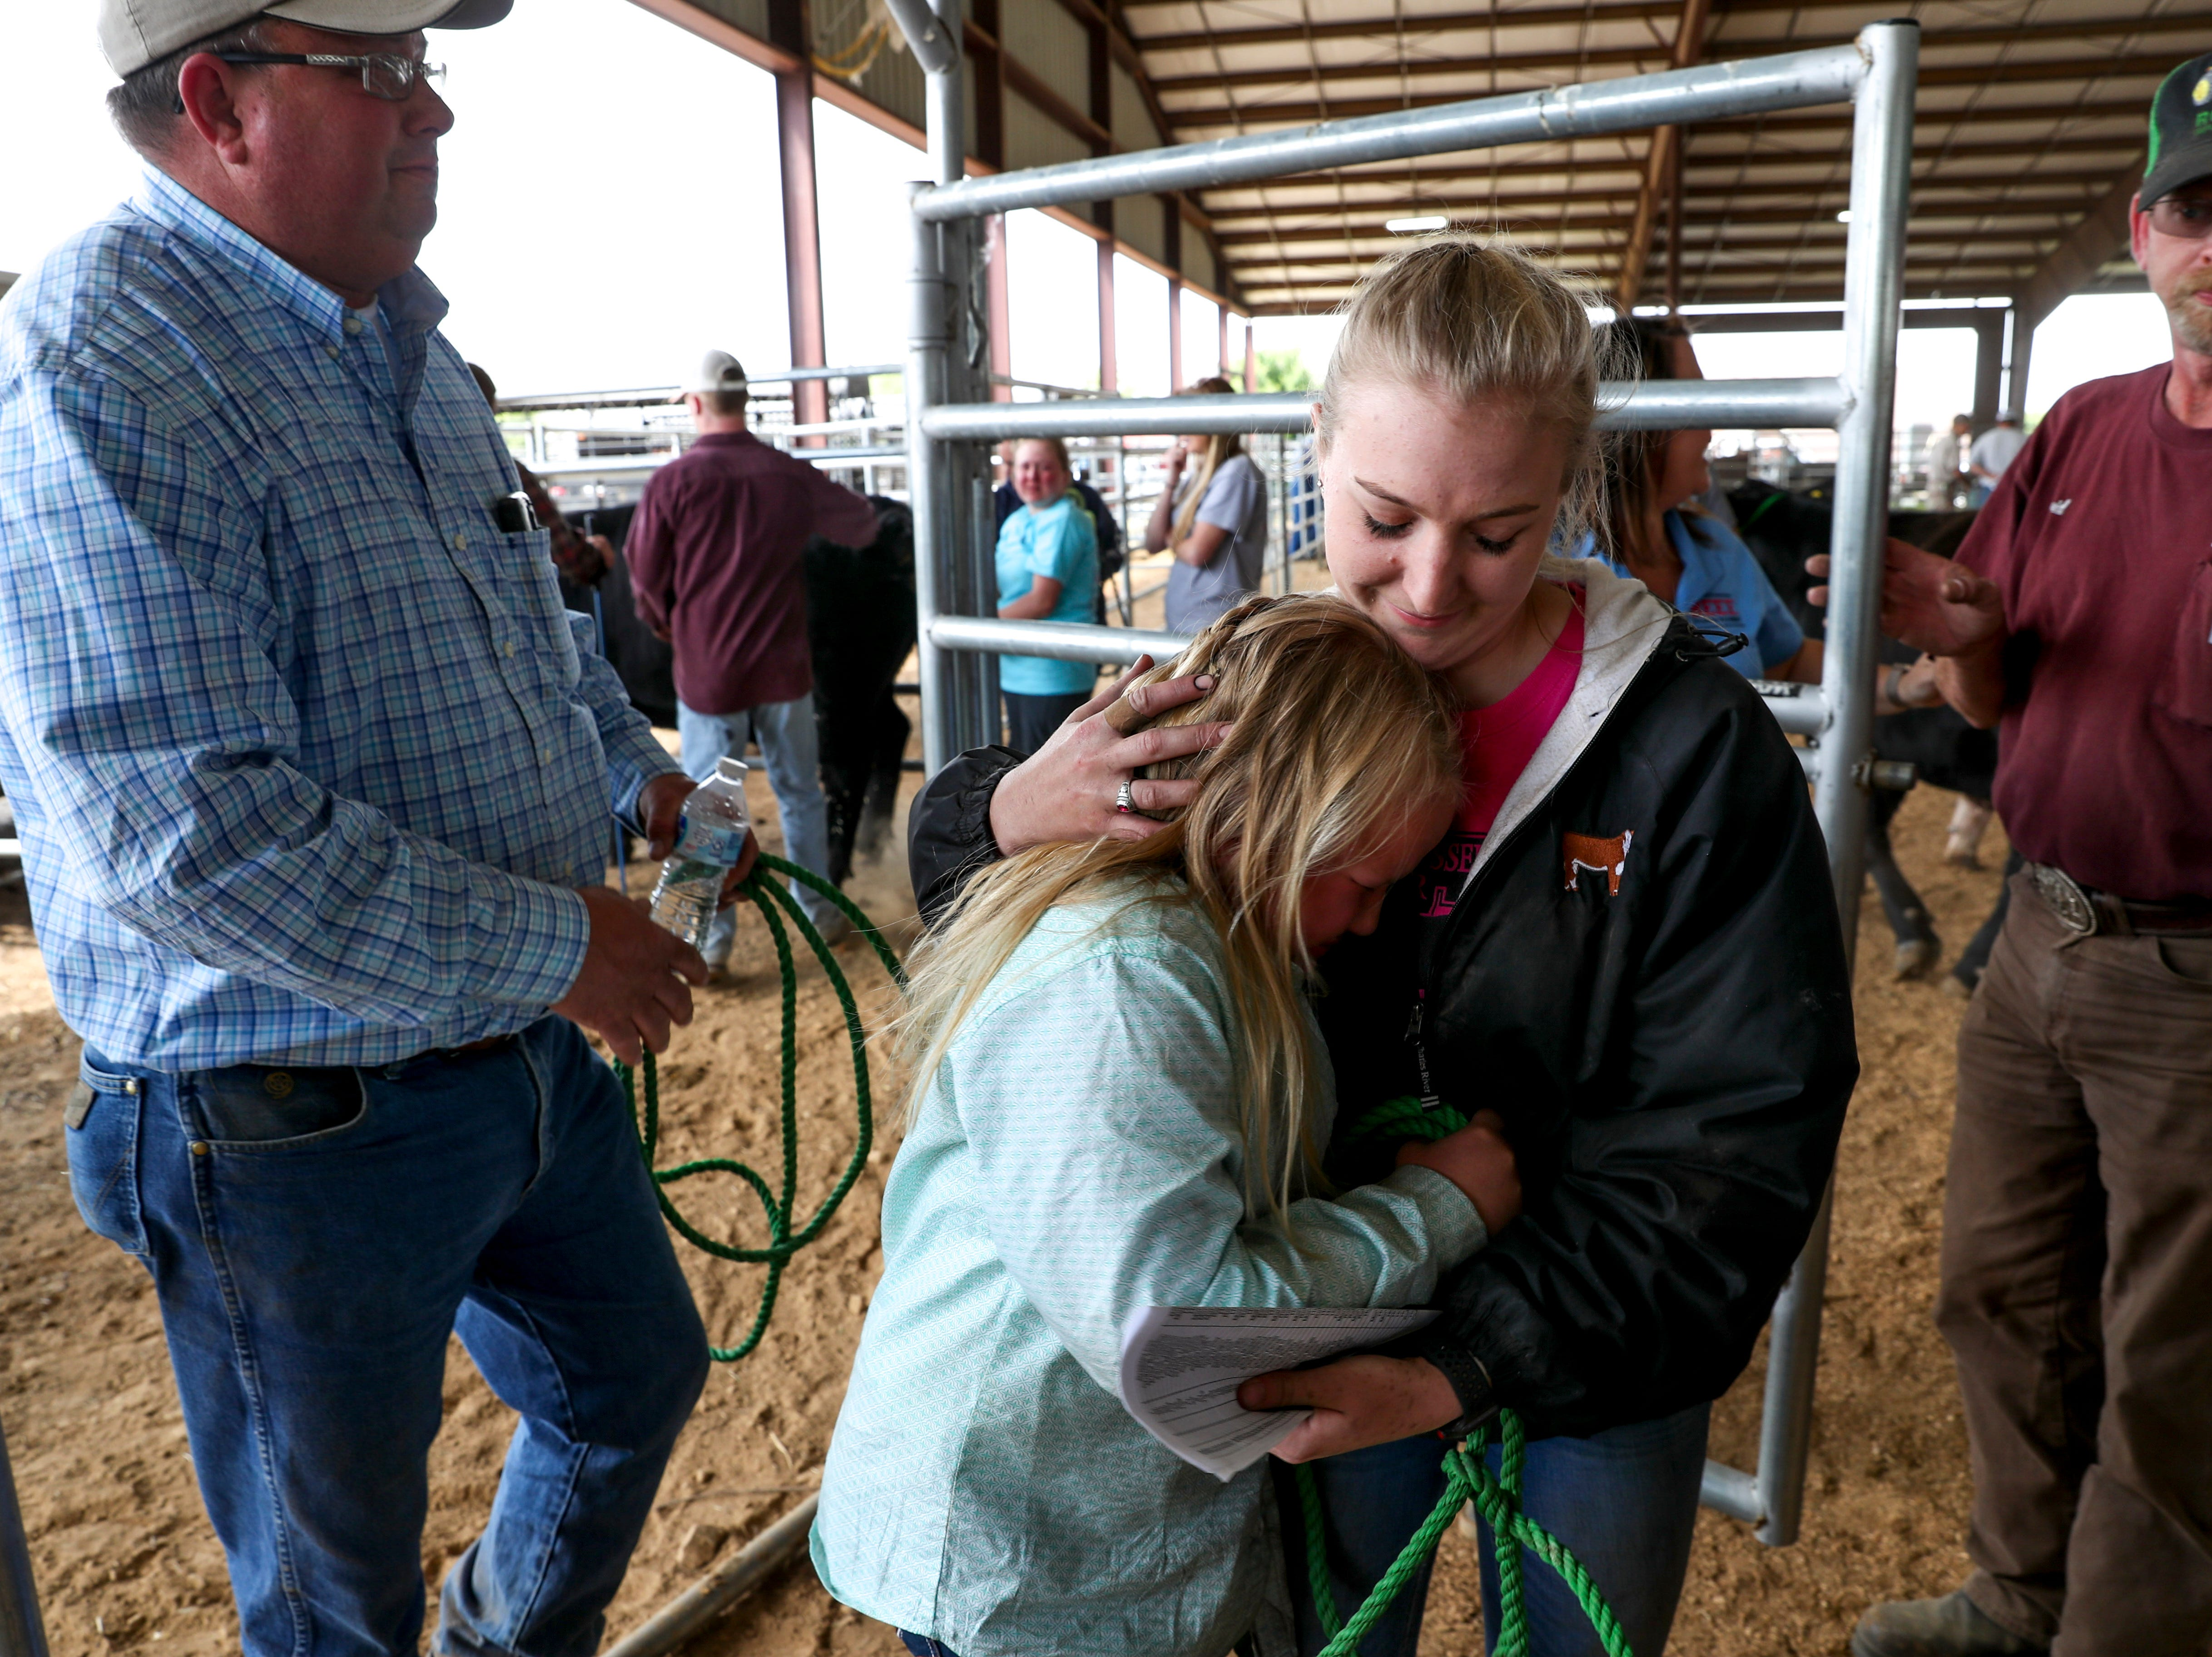 Cheyenne Coleman embraces her younger sister Ella Coleman, 10, that just said goodbye to her steer Cole at the 69th annual Clarksville Area Junior Better Beef Show at the John Bartee Agricultural Center in Clarksville, Tenn., on Tuesday, May 14, 2019.